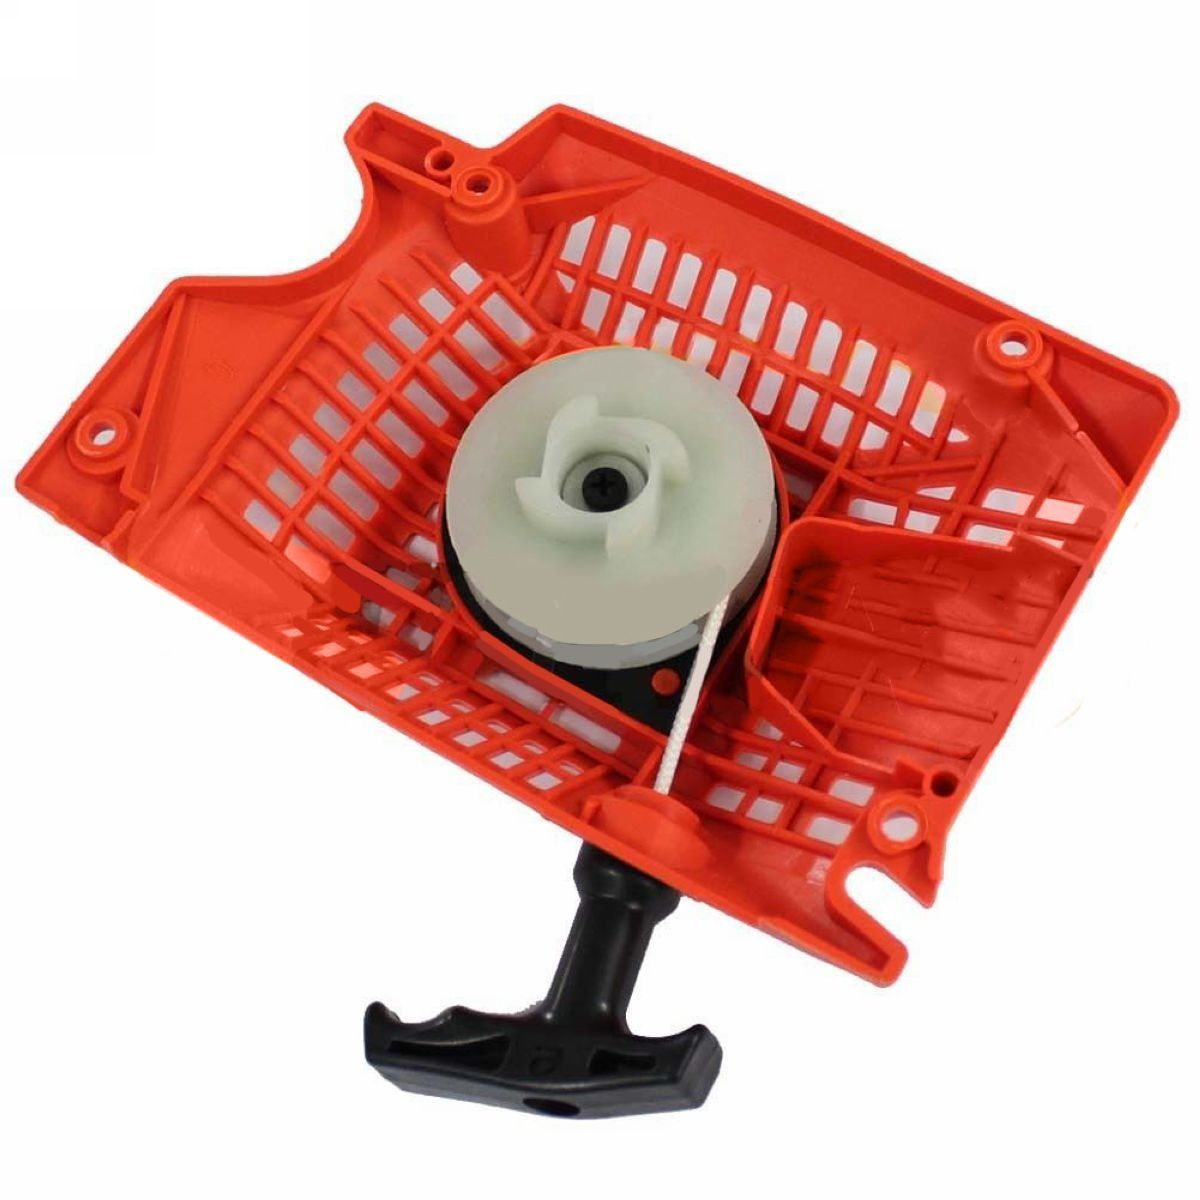 Recoil Pull Start Starter For Chainsaw 4500 5200 5800 Replacement For Chinese Chainsaw 45cc 52cc 58cc Orange Mayitr